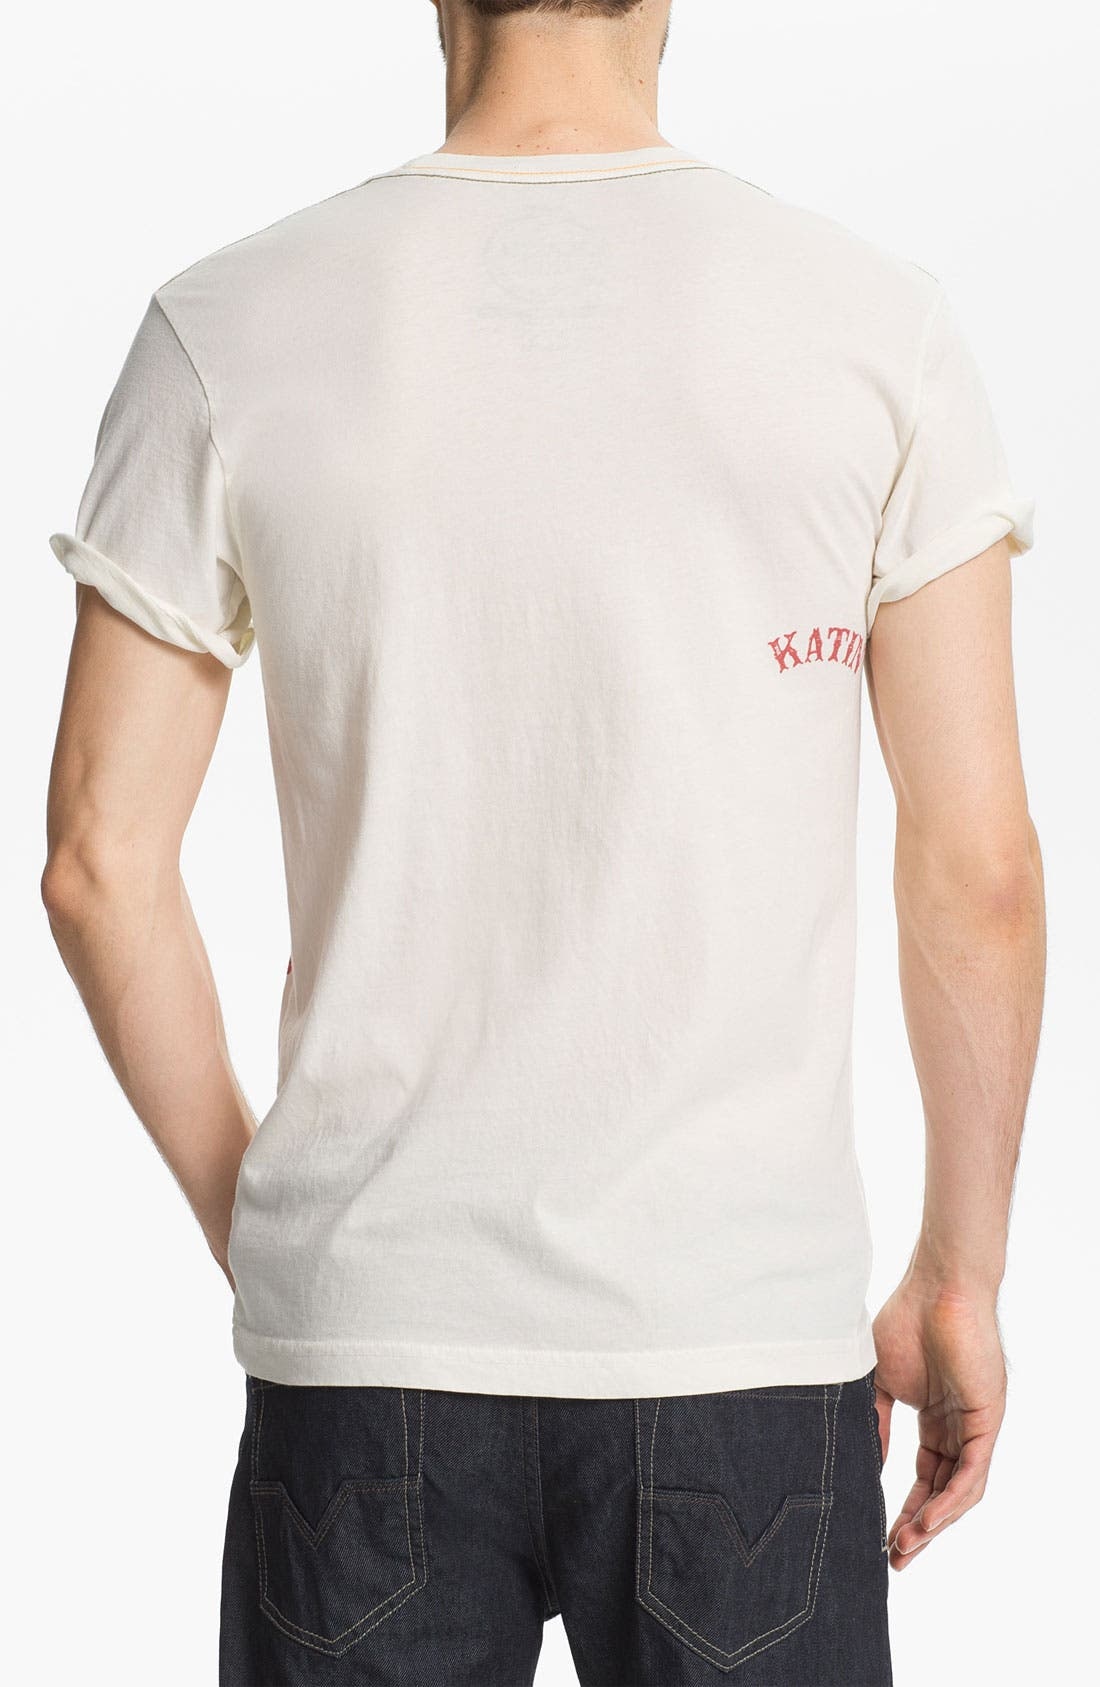 Alternate Image 2  - Katin 'Wench' Graphic T-Shirt